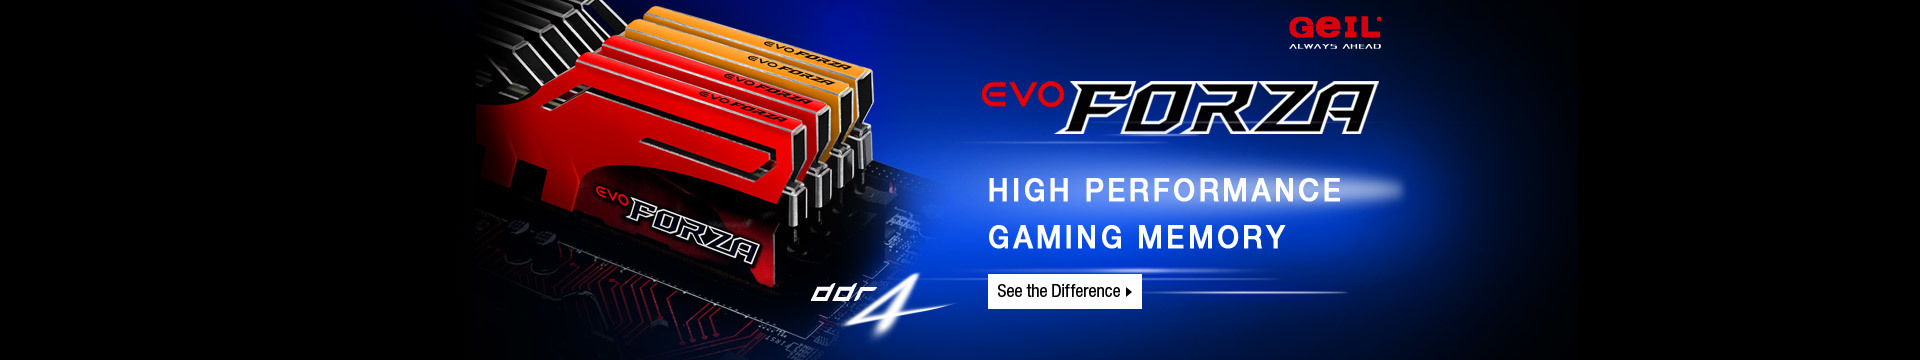 High performance gaming memory